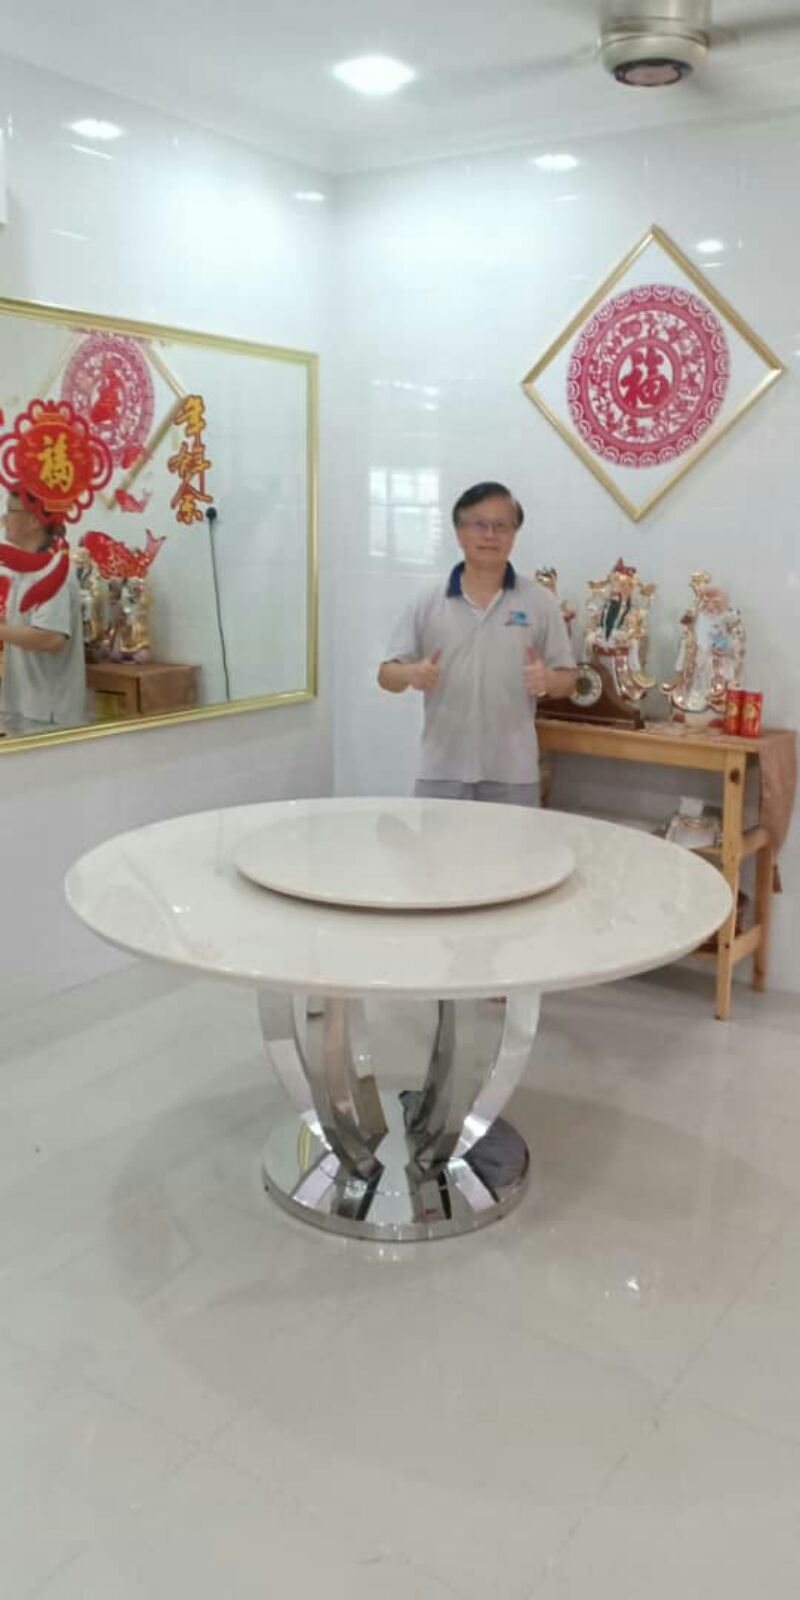 Modern Marble Dining Table From Italy - Royal Botticino Marble